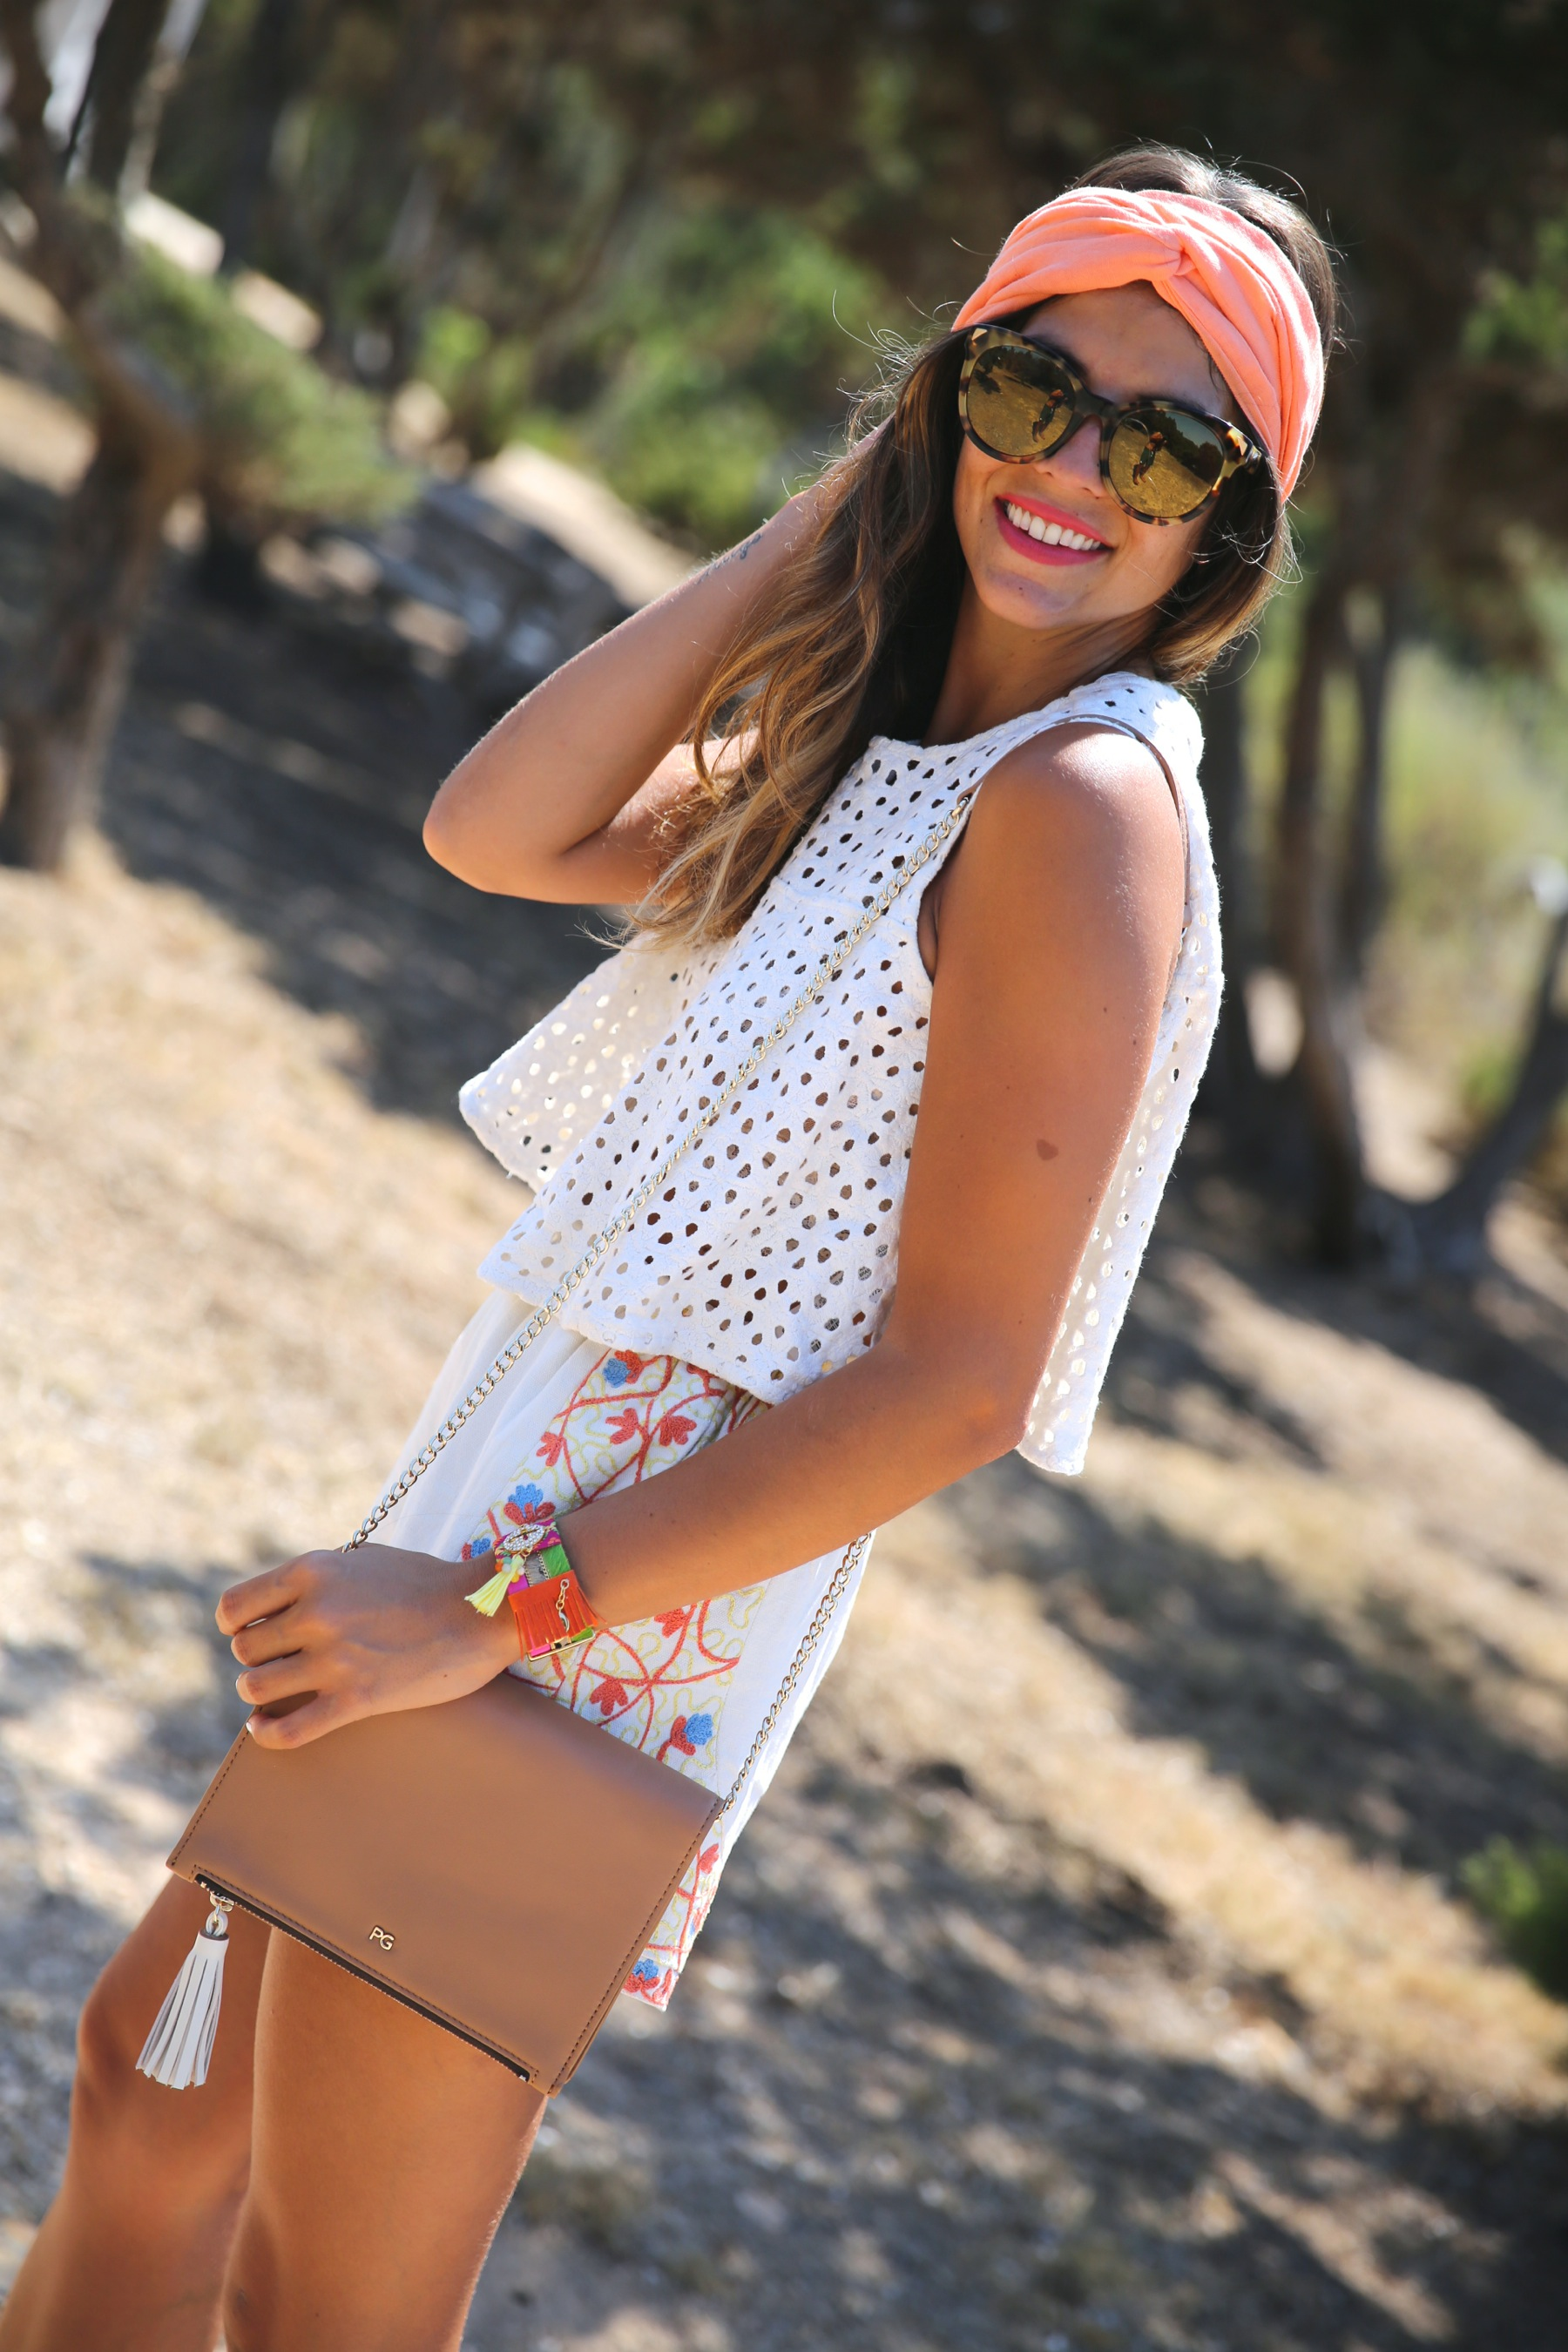 trendy_taste-look-outfit-street_style-blog-blogger-fashion_spain-moda_españa-crochet-top-encaje-girissima-pg-sandalias_cuñas-wedged_sandals-ethnic-etnic_print-turbante-turban-4